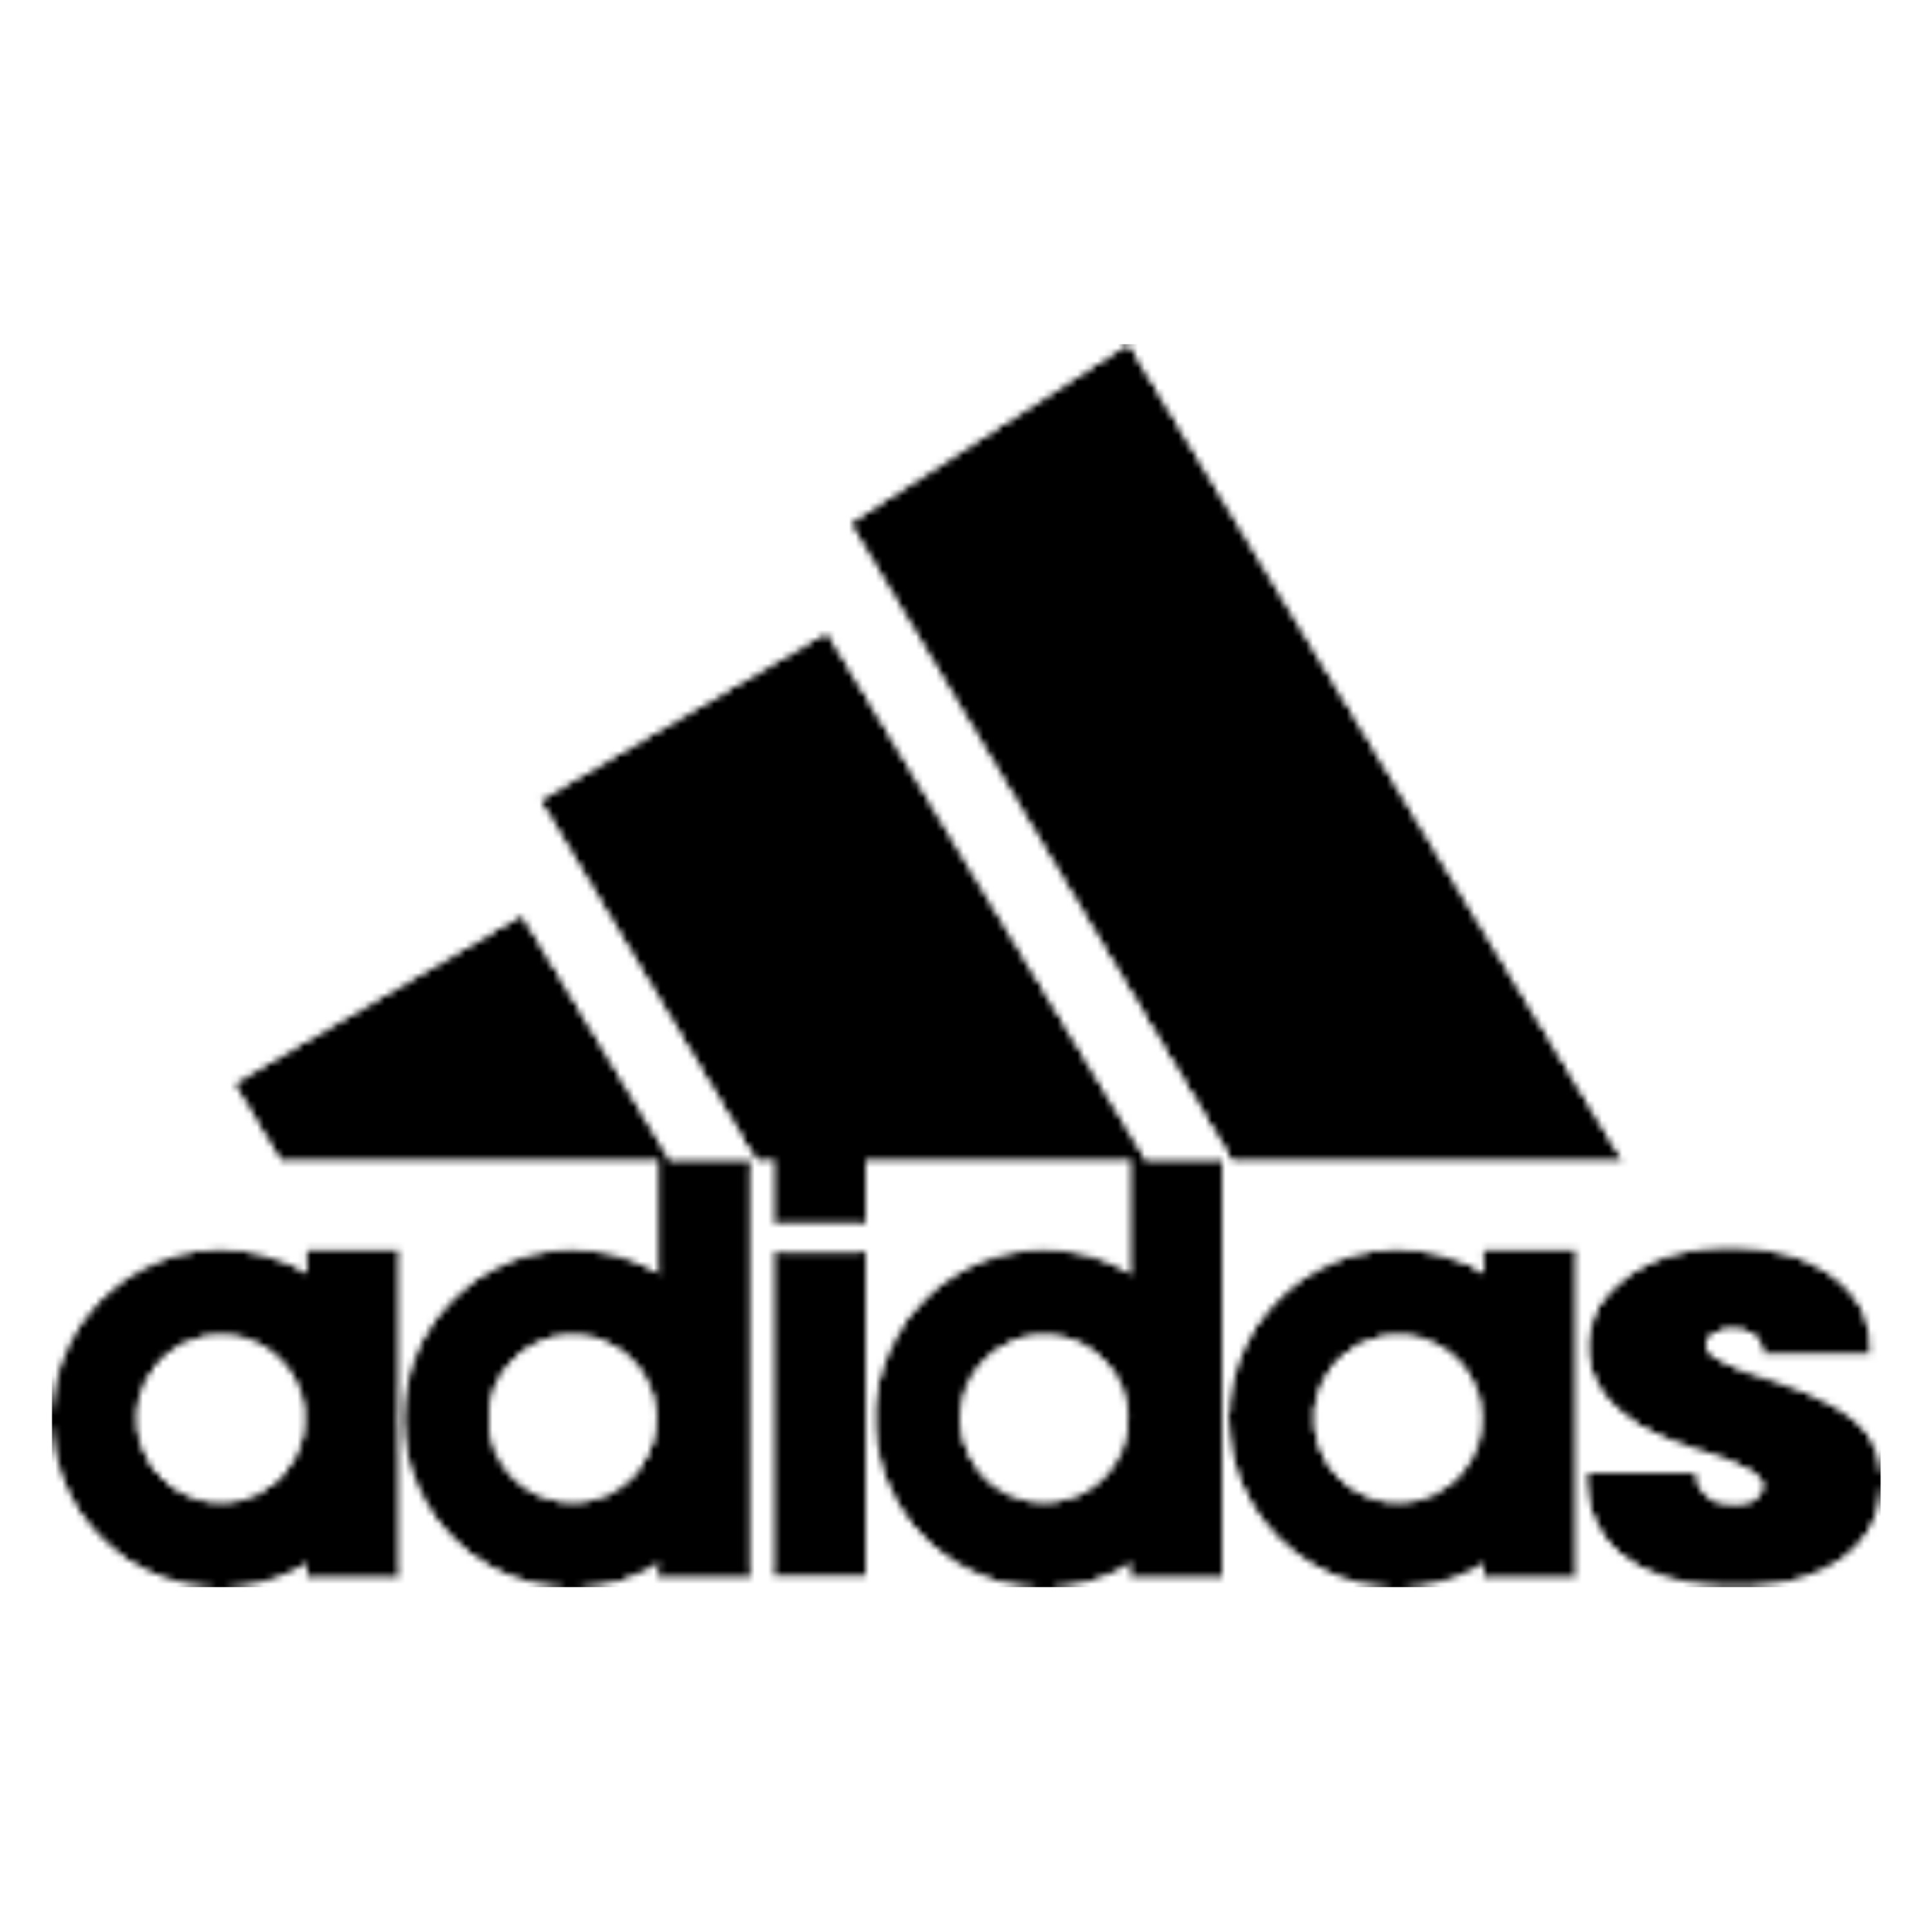 adidas Corporate Ventures - Investing in innovative sports solutions